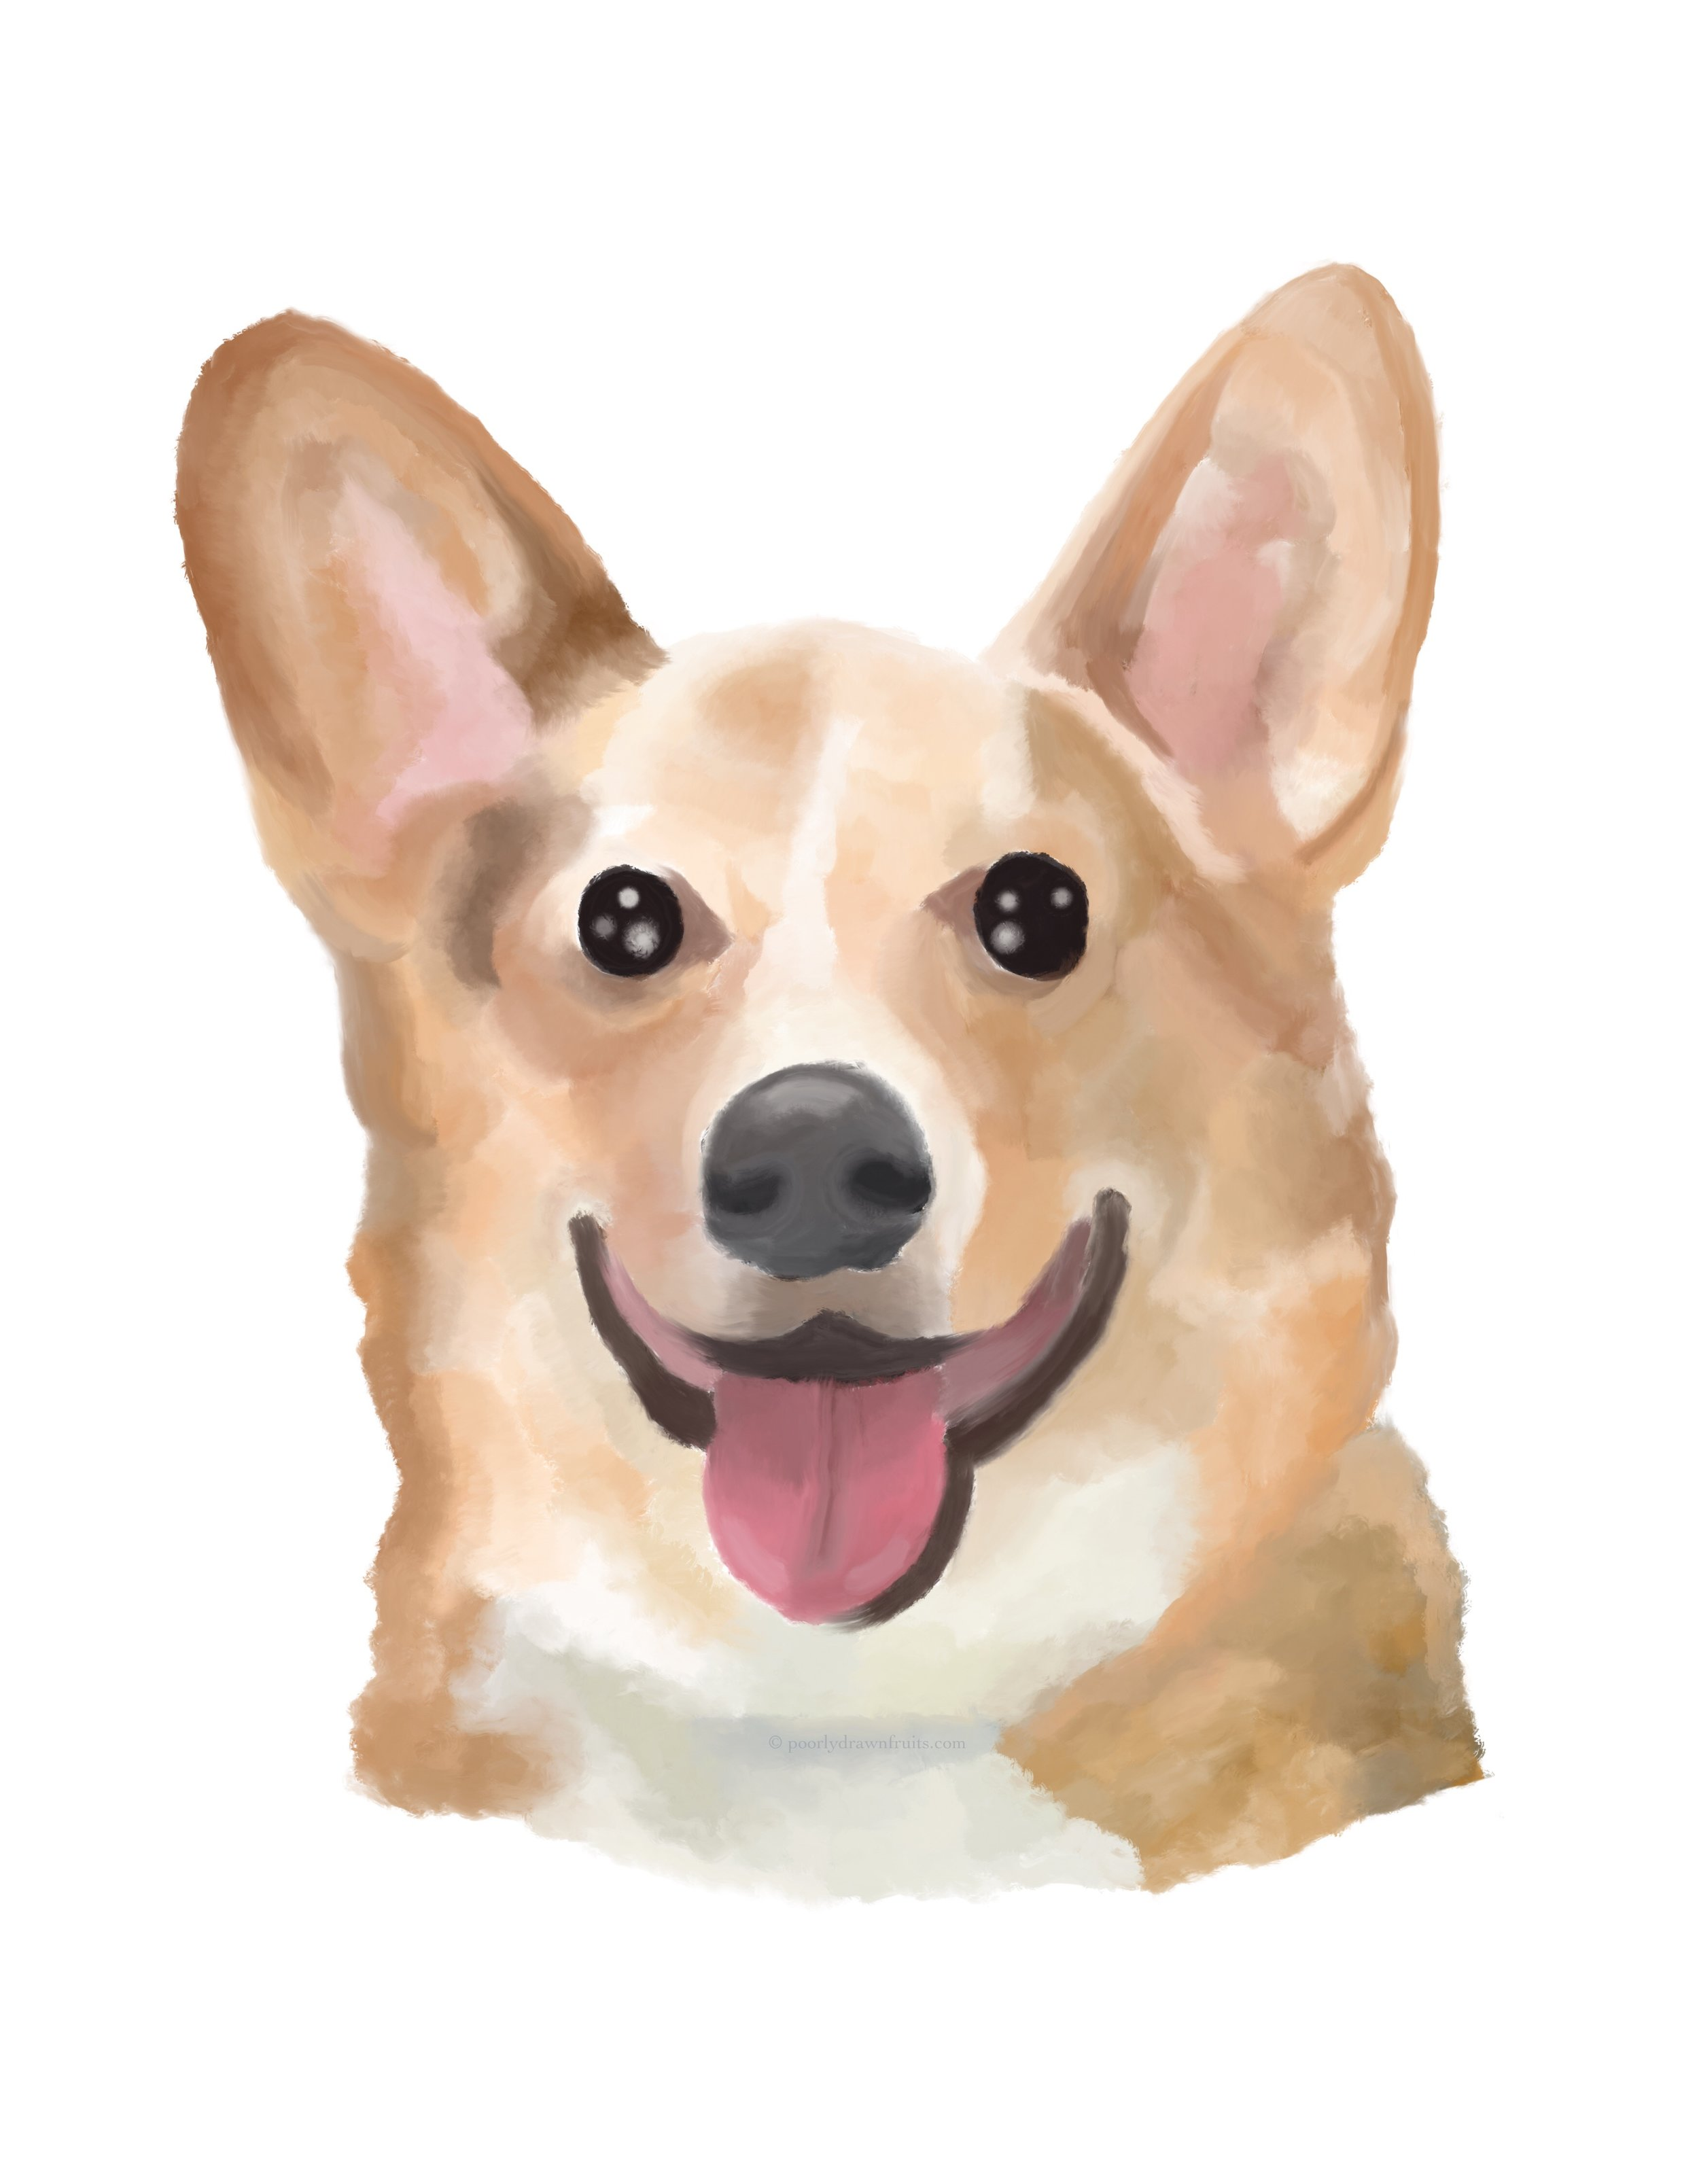 rex the corgi ipad digital painting